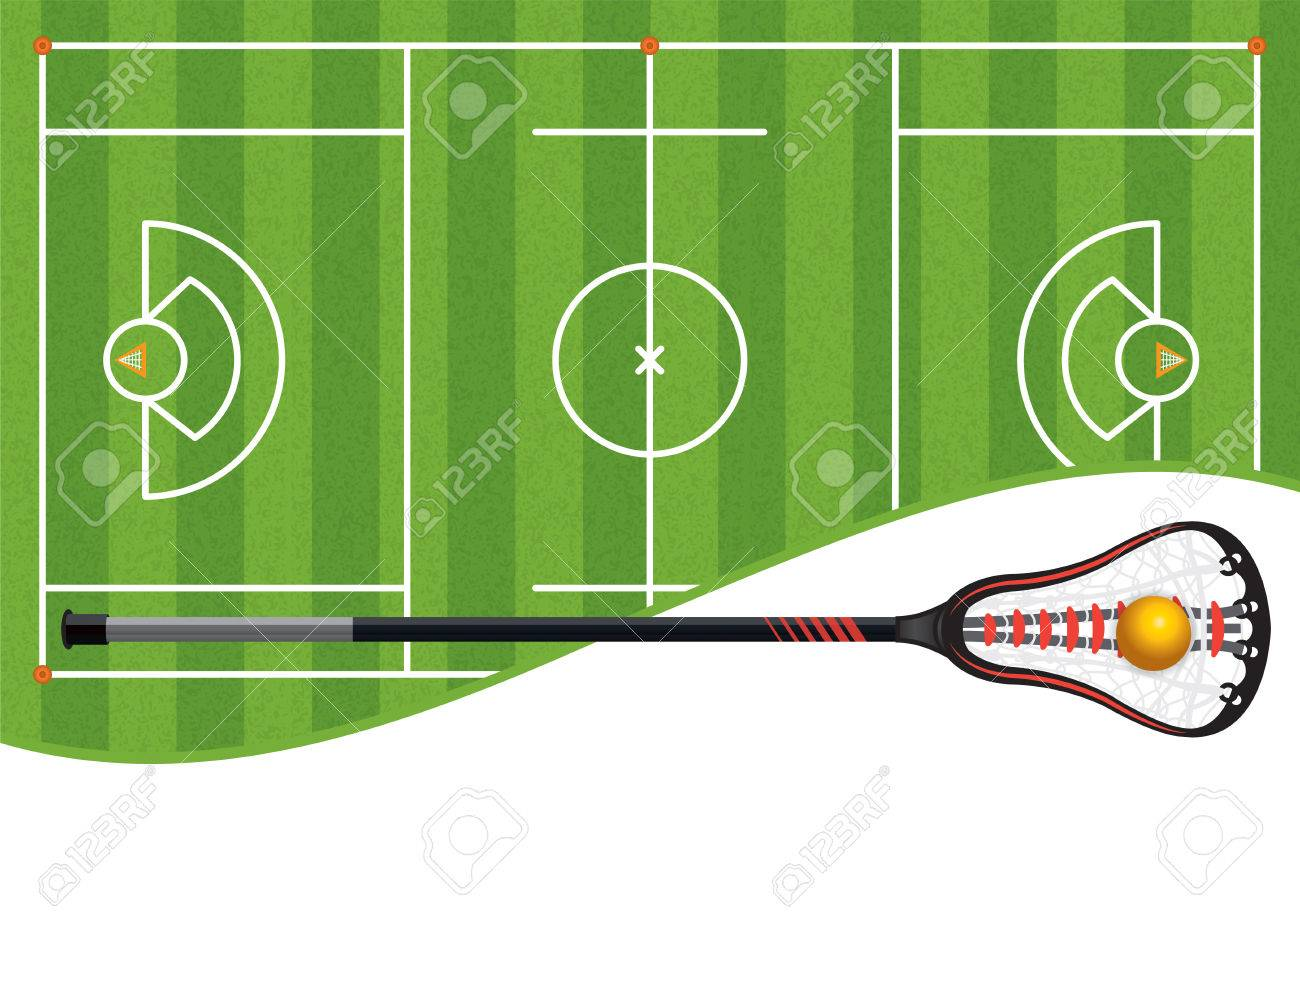 A lacrosse field with a lacrosse stick and ball and room for copy. Vector EPS 10 available. - 57975514